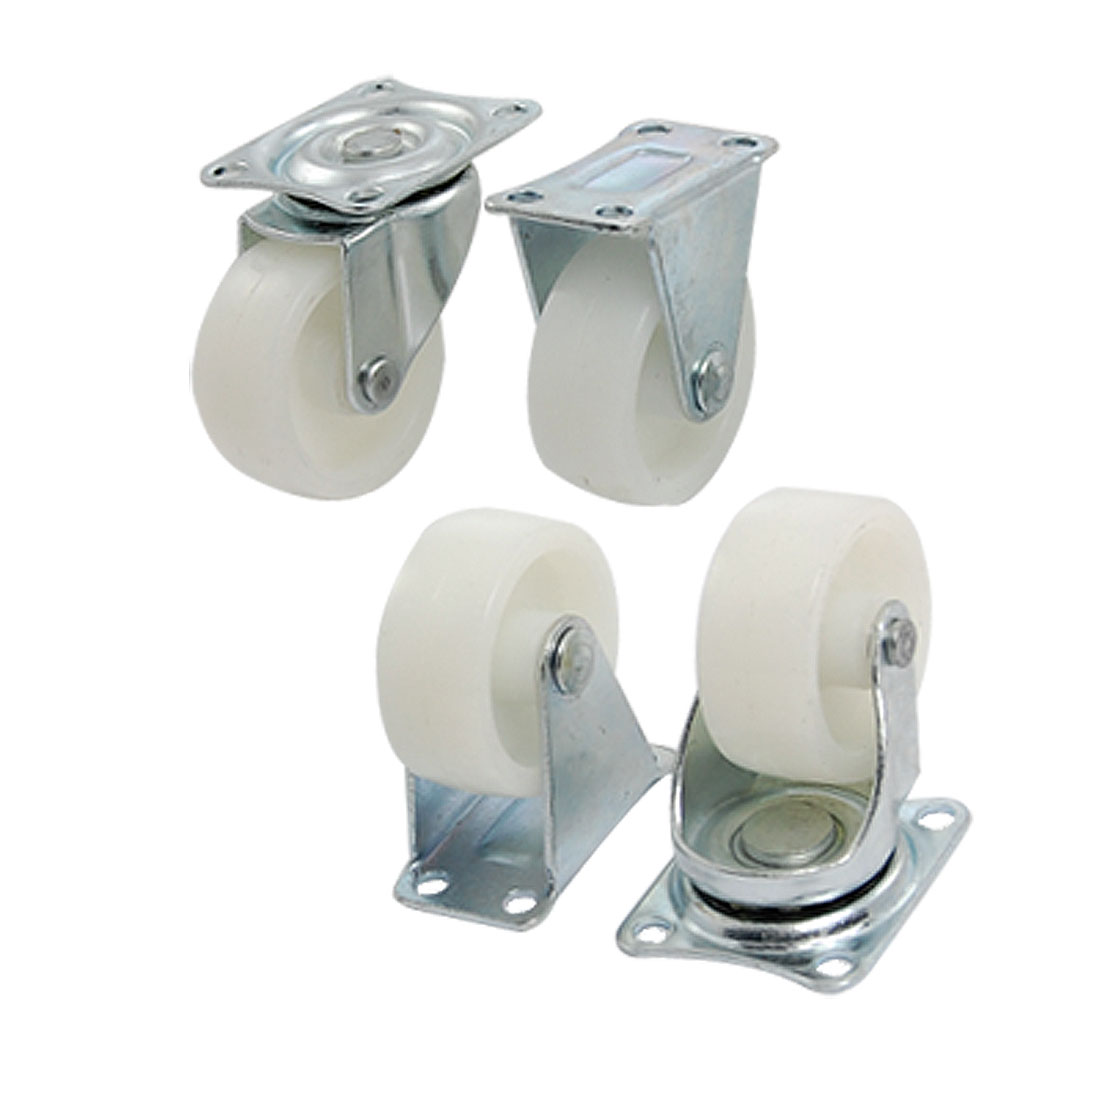 "1.5"" White Wheel Silver Tone Metal Top Plate Fixed Swivel Caster Set 4 Pcs"